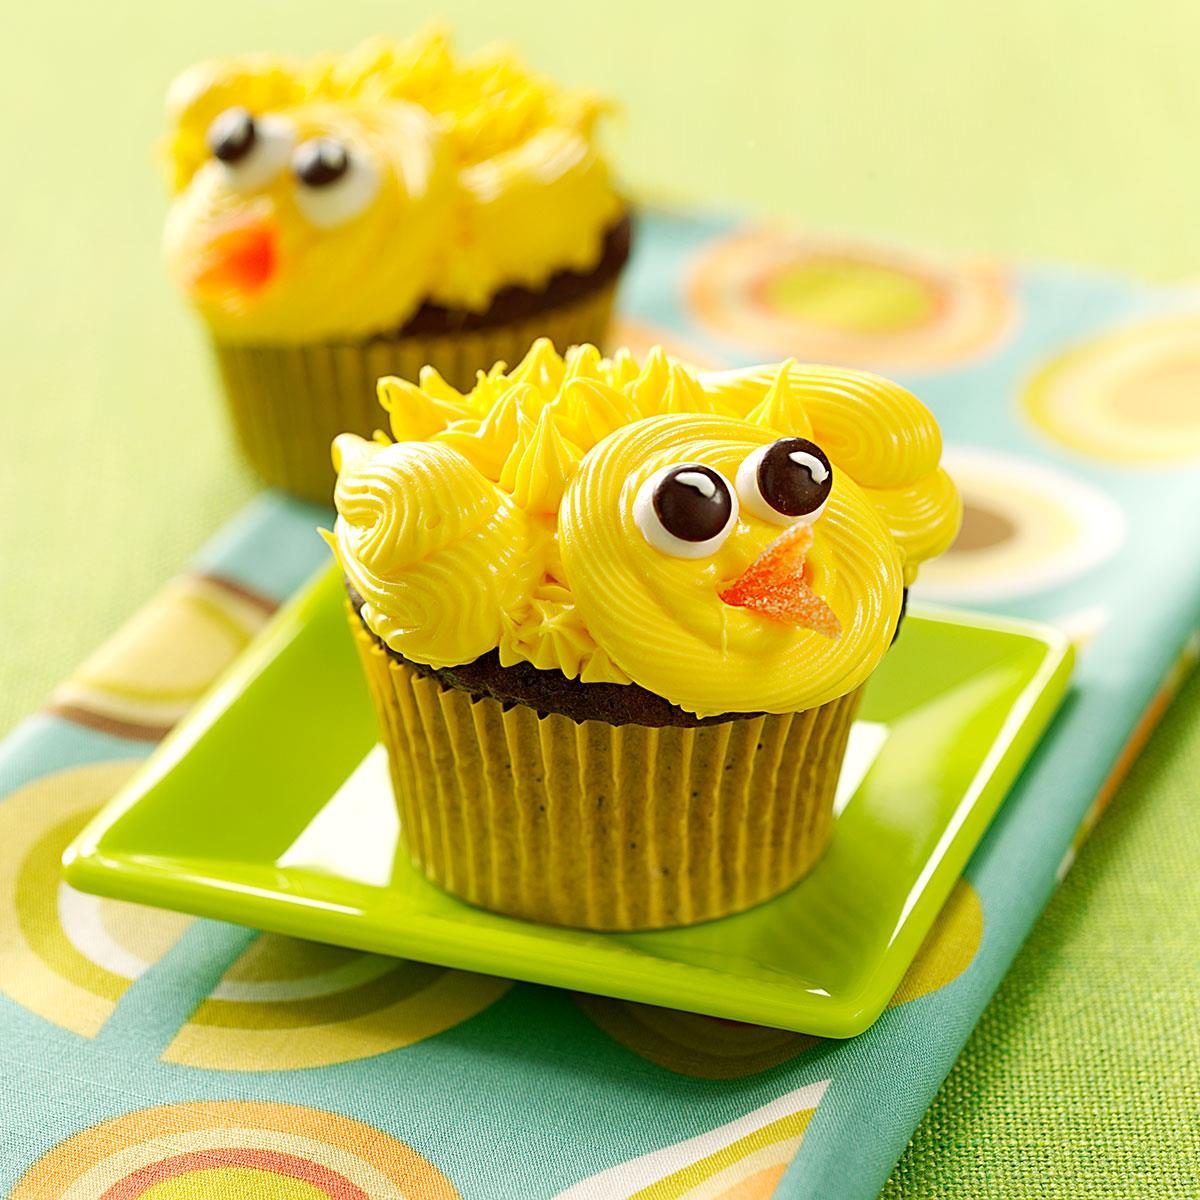 Chirpy chick cupcakes recipe taste of home for Cute cupcake decorating ideas for easter